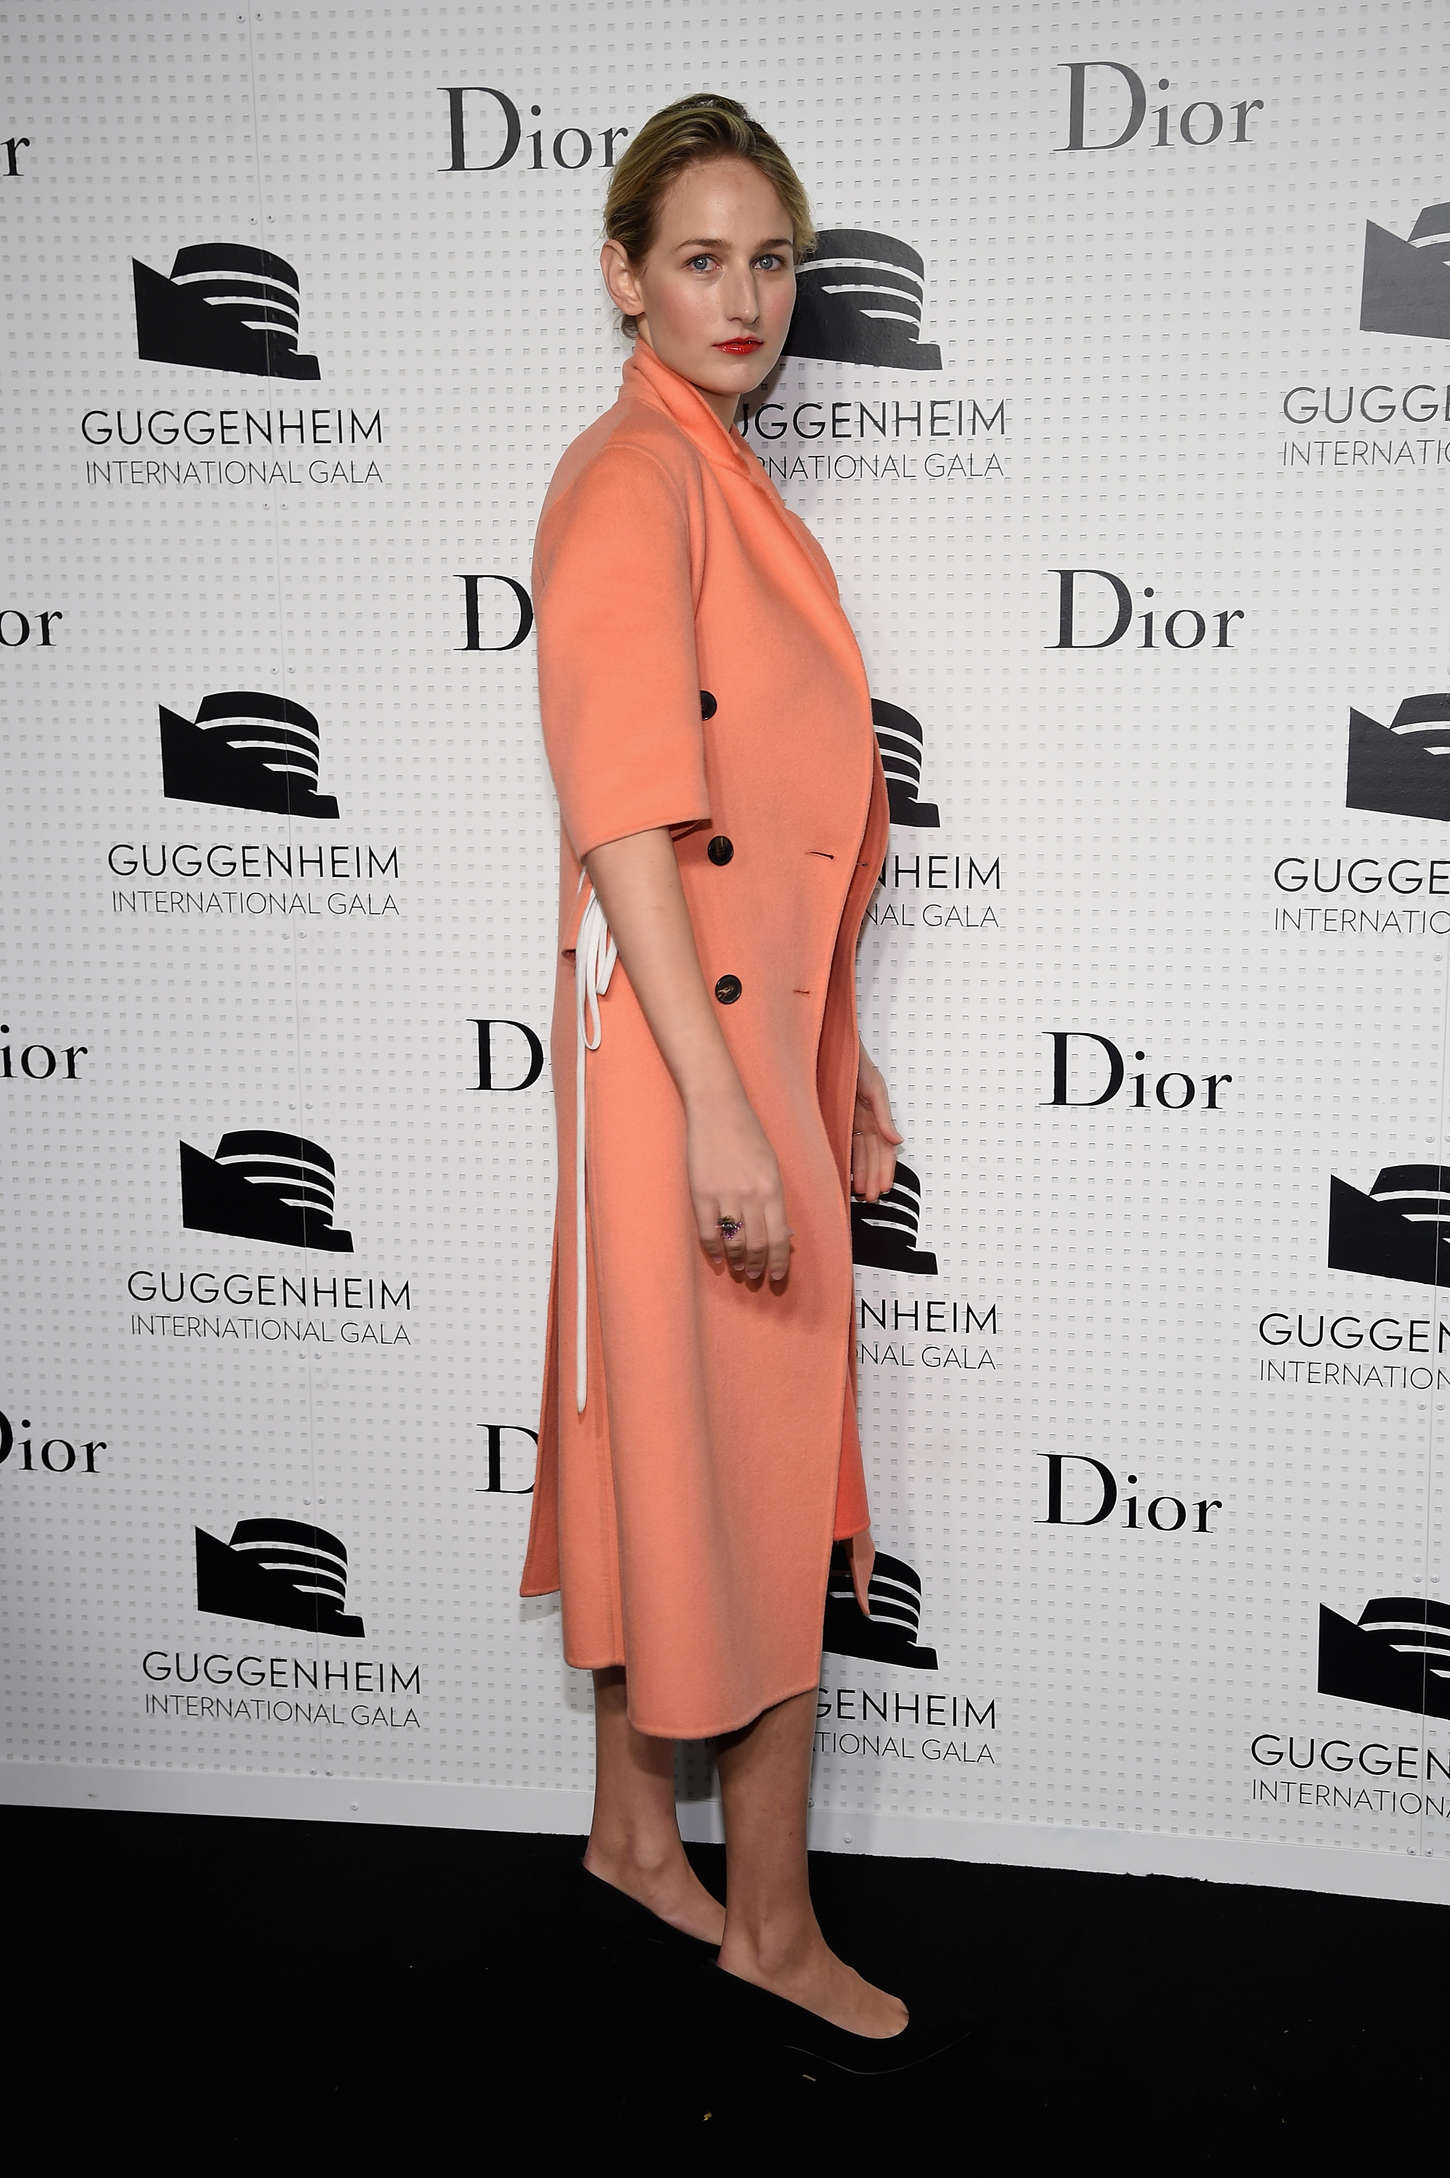 Leelee Sobieski Guggenheim International Gala Dinner made possible by Dior in New York